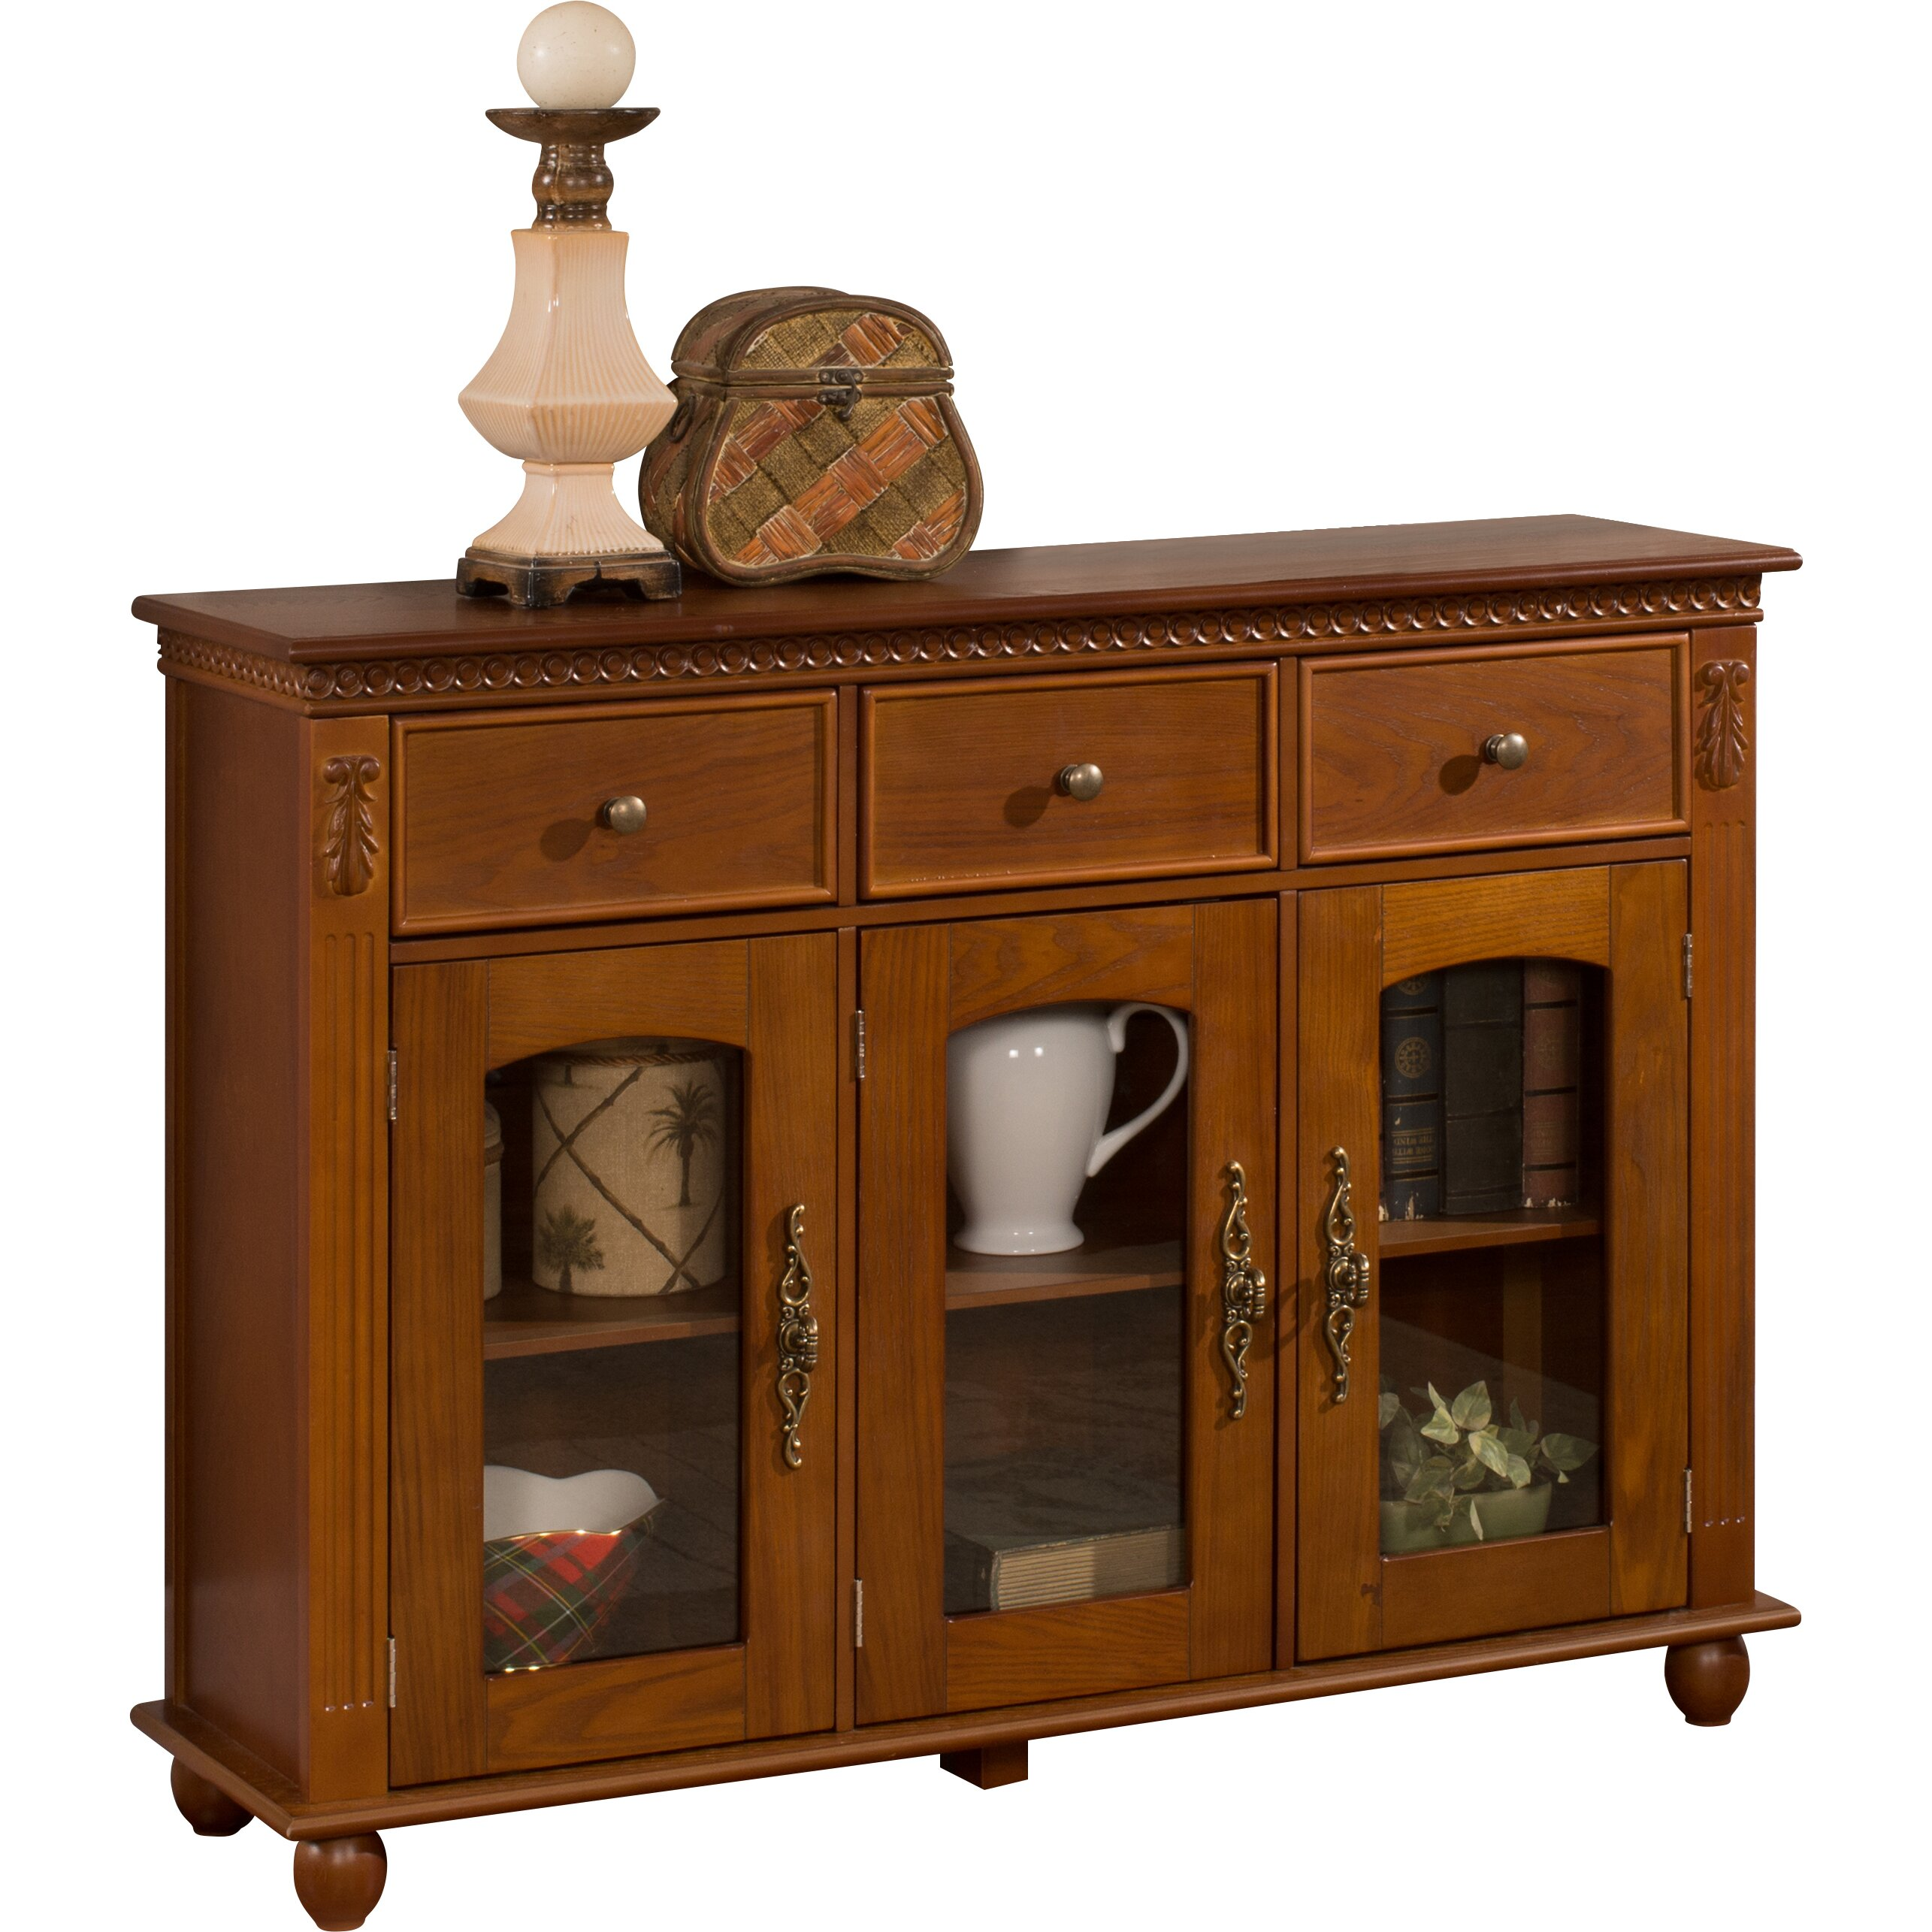 Inroom designs console table cabinet reviews wayfair In room designs